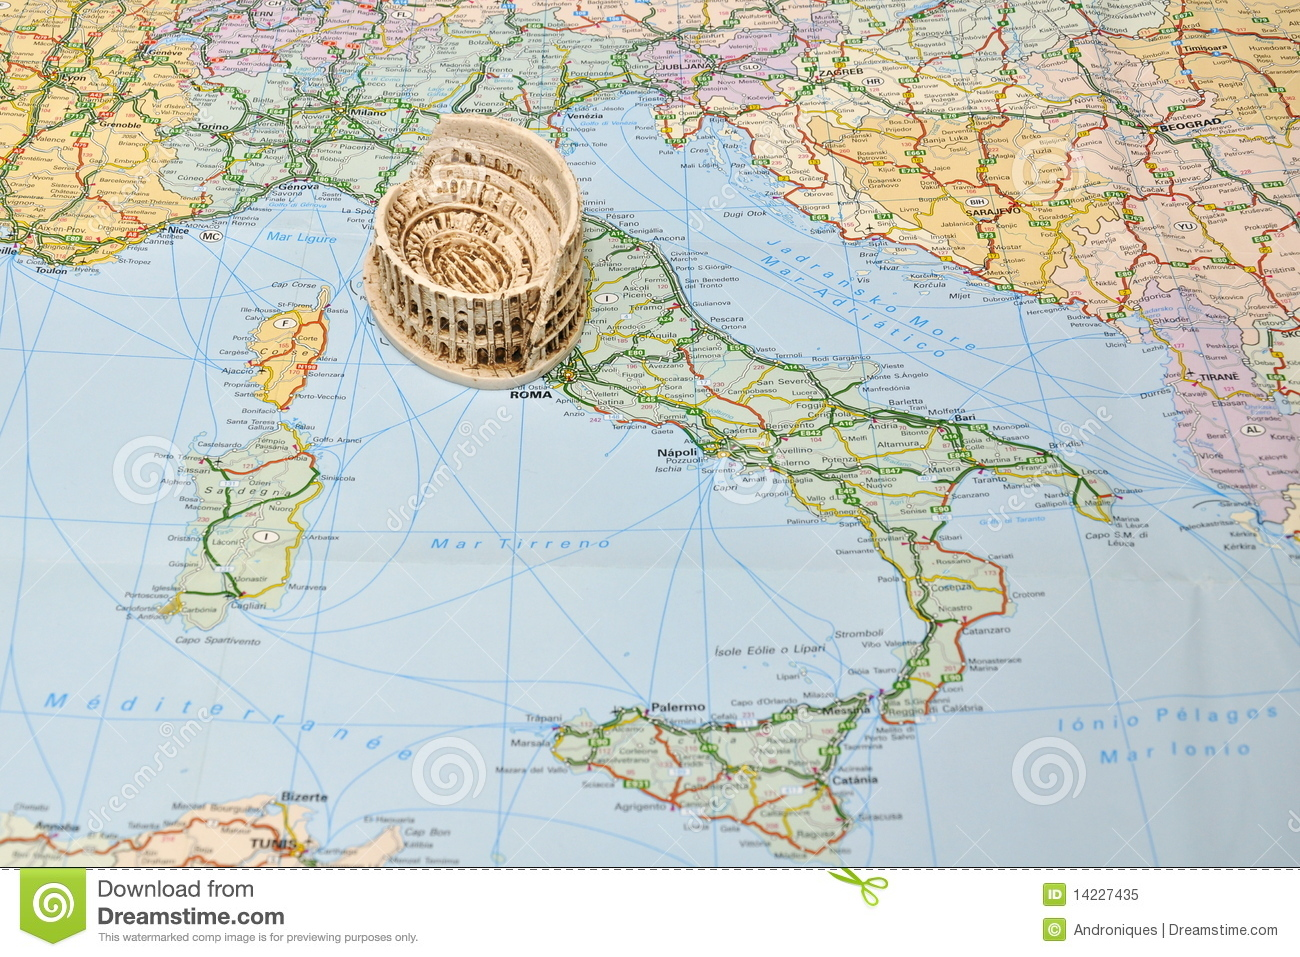 Printable Map Of Italy Free.Colosseum Rome On Italy Map Miniature Souvenir Stock Image